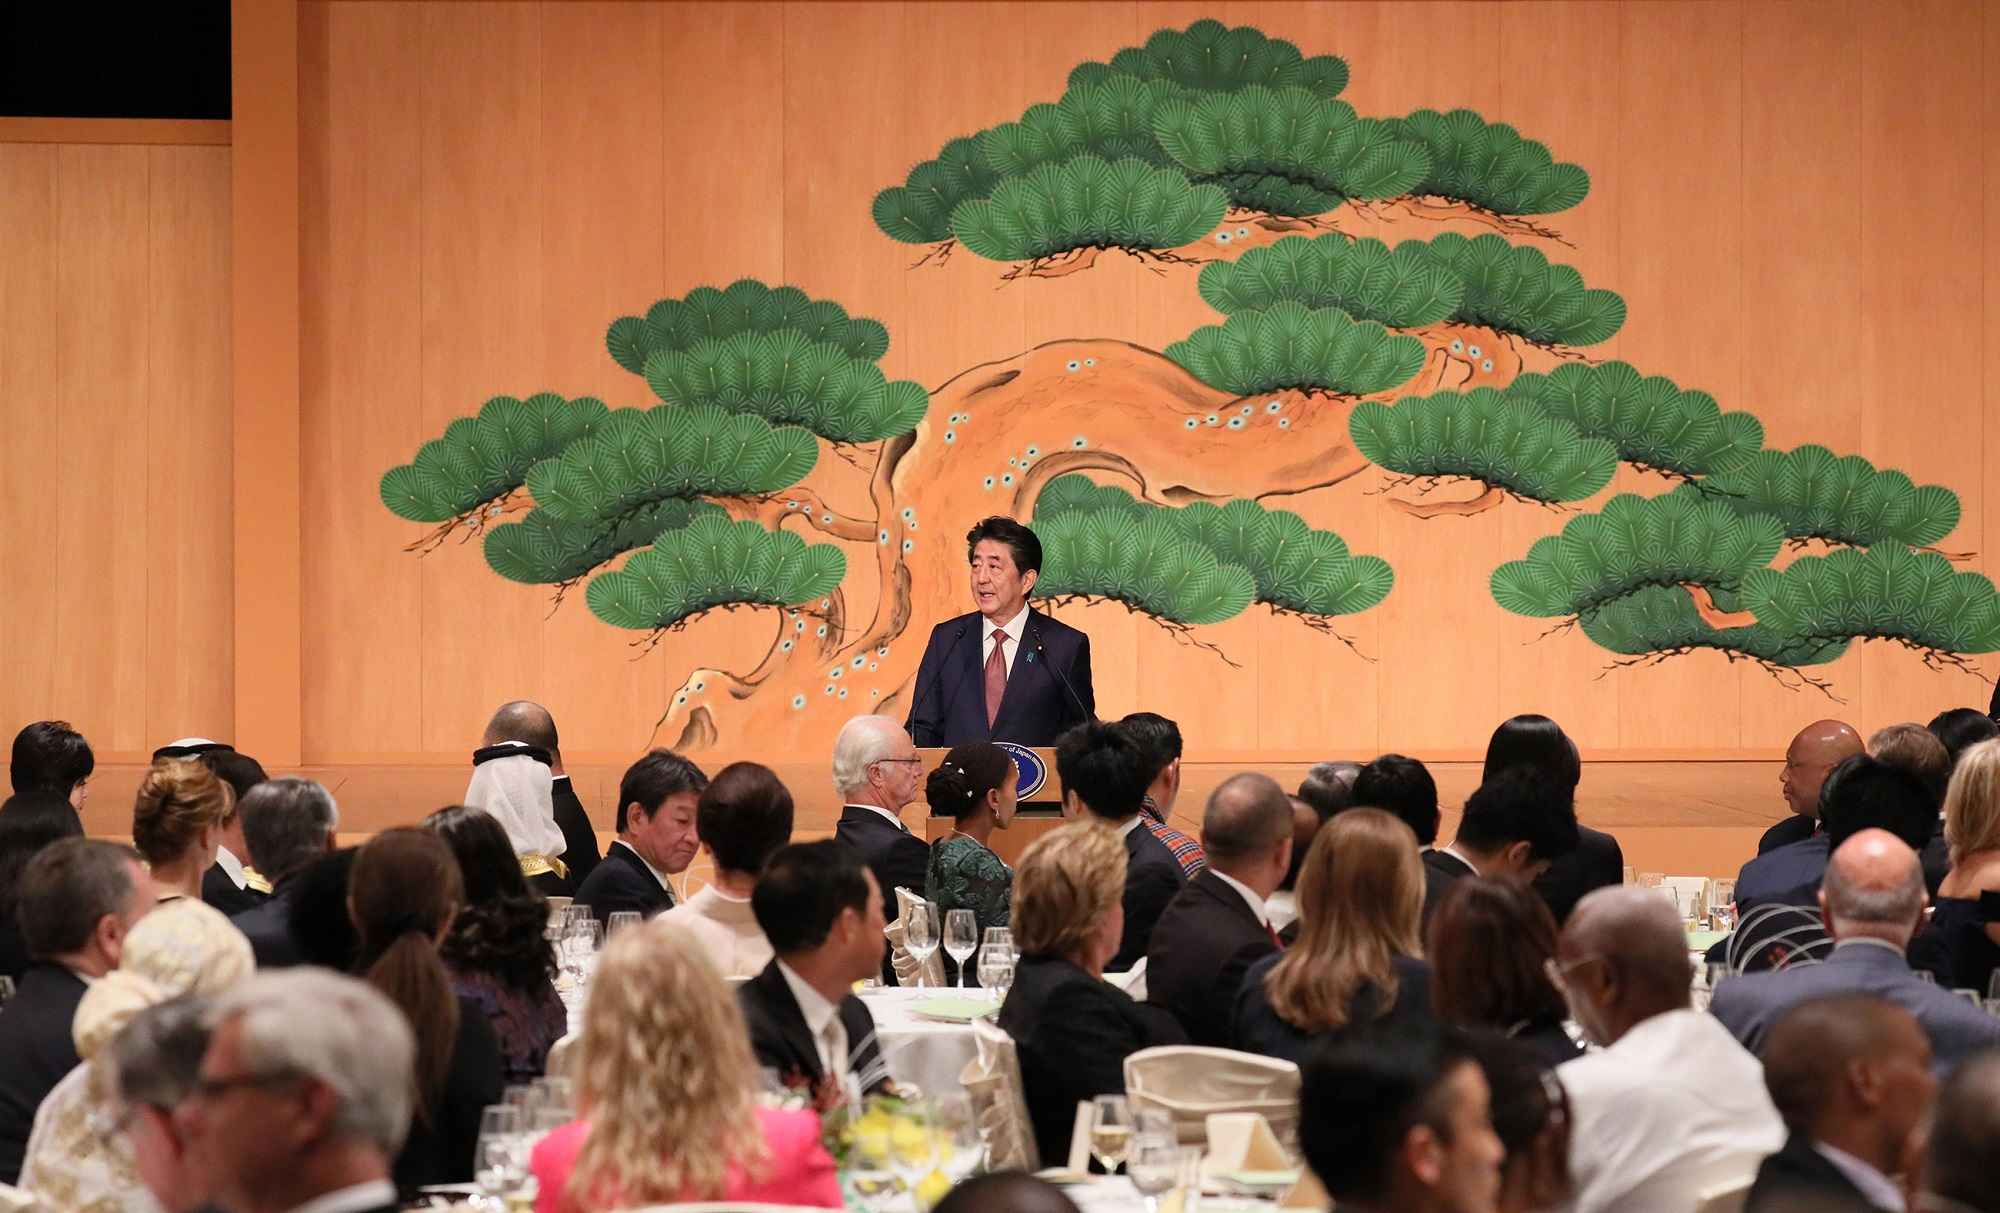 Photograph of the Prime Minister delivering an address at the Naikaku-Soridaijin-Fusai-Shusai-Bansankai (banquet hosted by the Prime Minister and his spouse) (3)